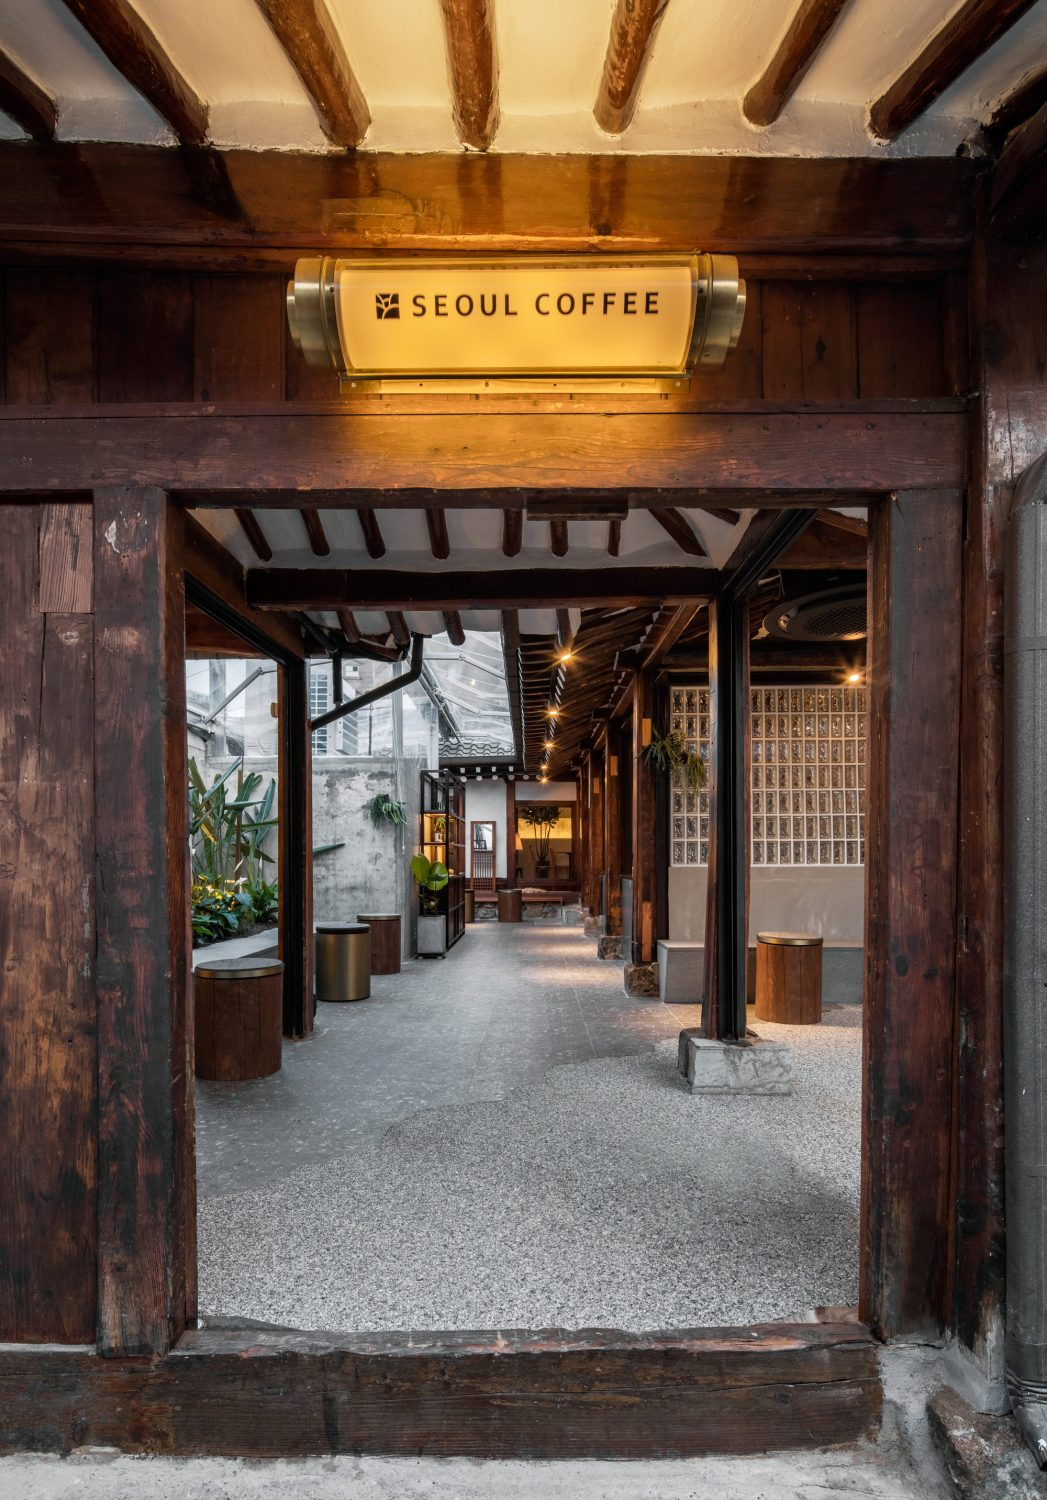 Seoul Coffee by LABOTORY